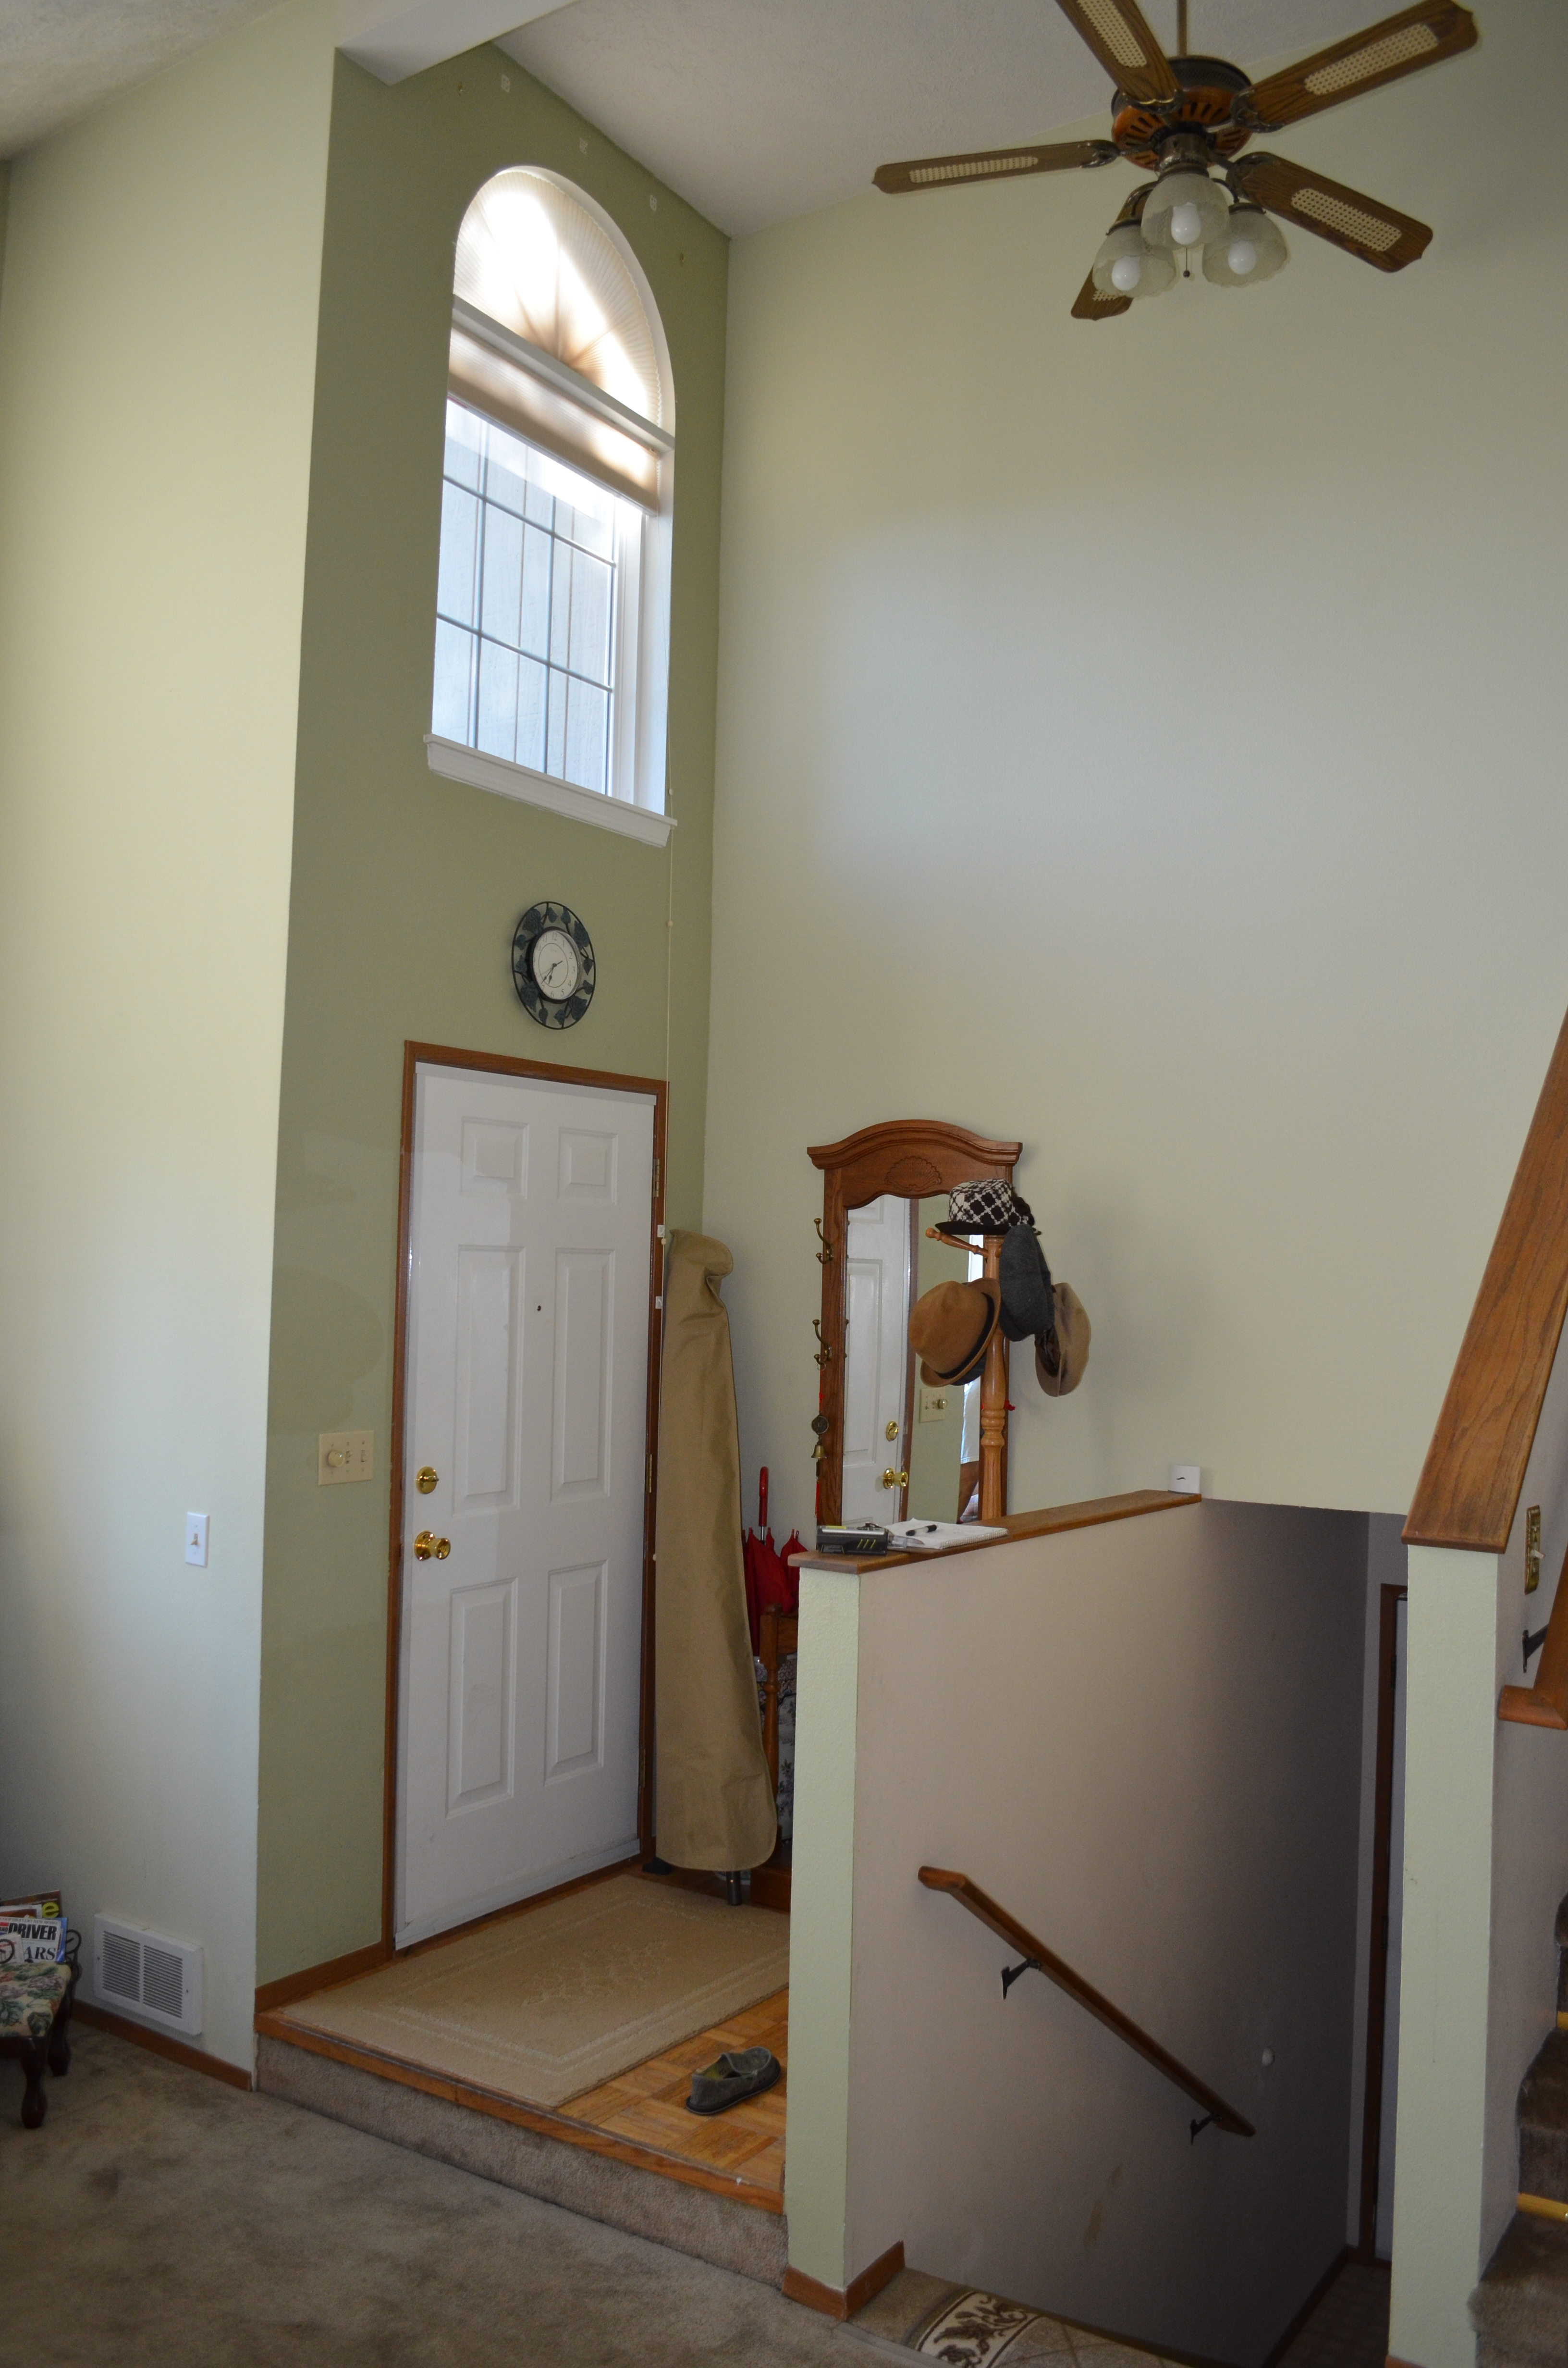 Remodeling Costs in Spokane - Carter Construction